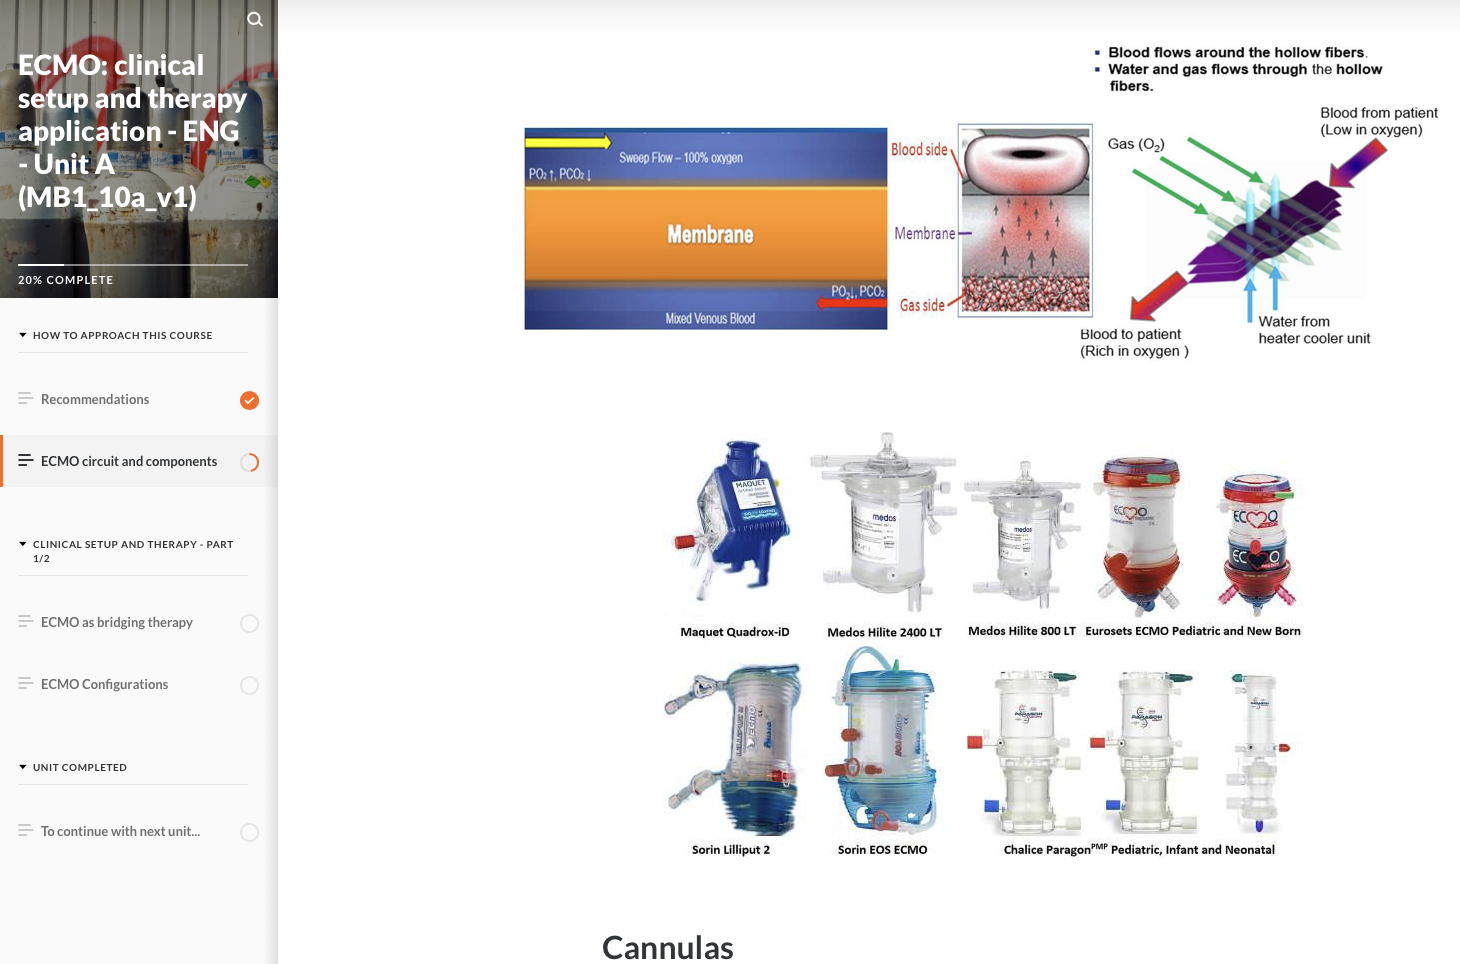 Lesson-Plan-Basics-1-6-CytoSorb-in-ECMO